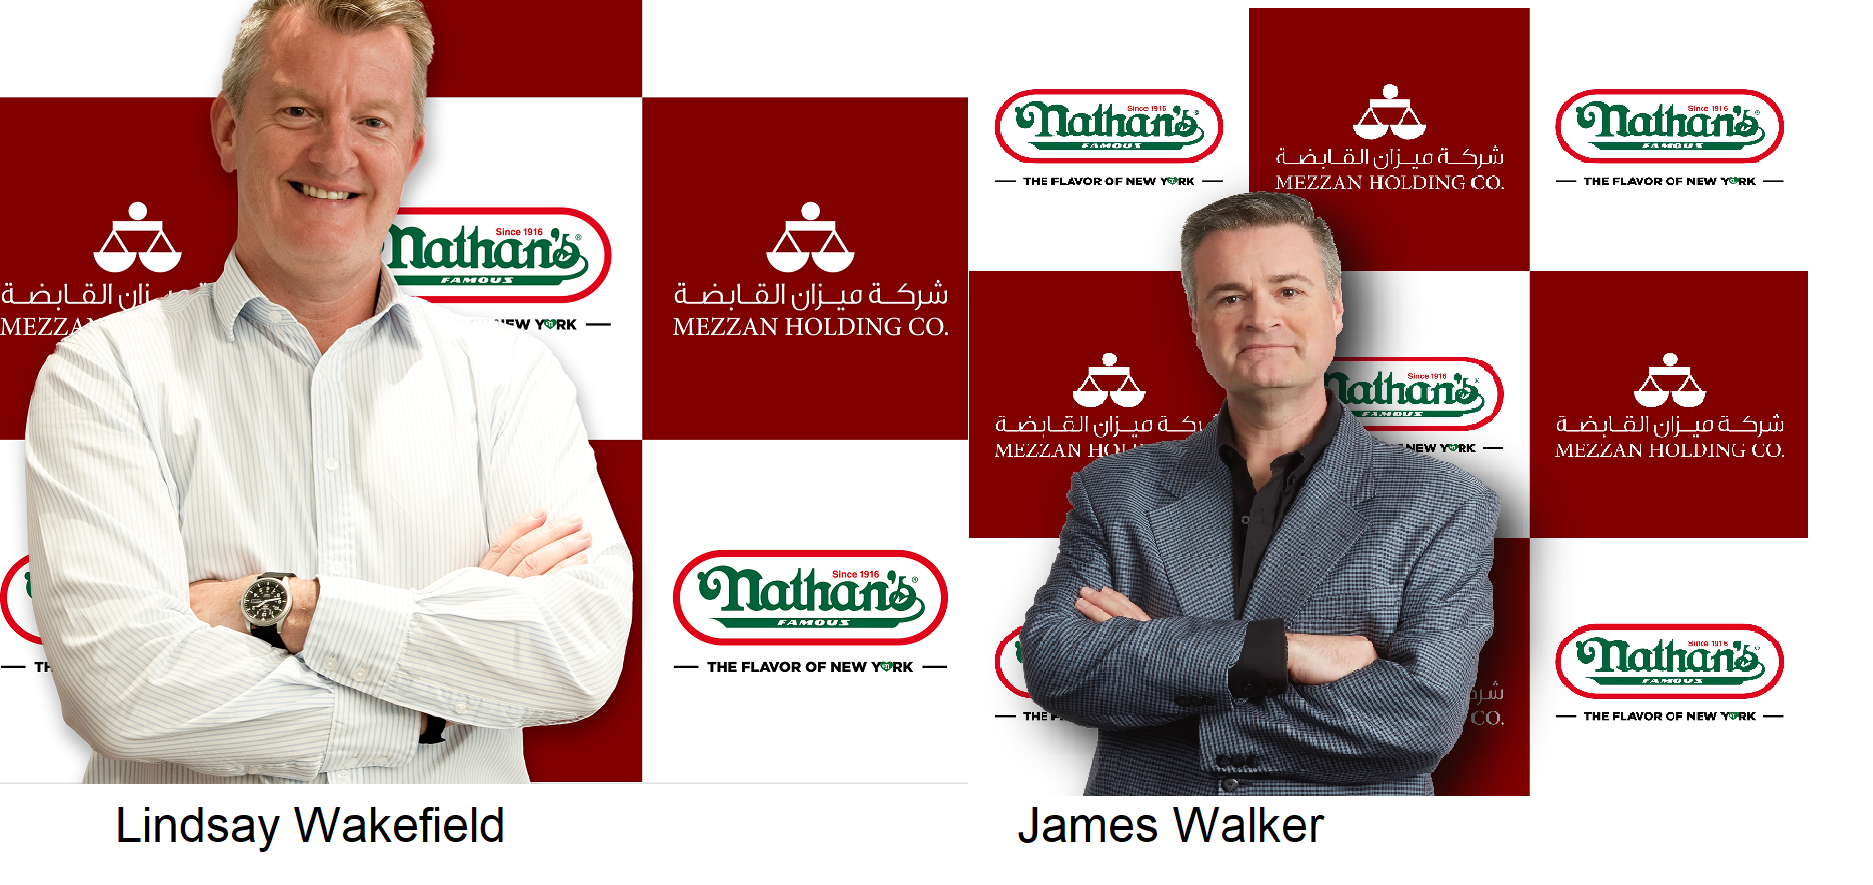 Mezzan Holding signs partnership with Nathan's Famous - Interview with Mr. Lindsay Wakefield, Commercial Director at Mezzan Holding & Mr. James Walker, SVP, Nathan's Famous.